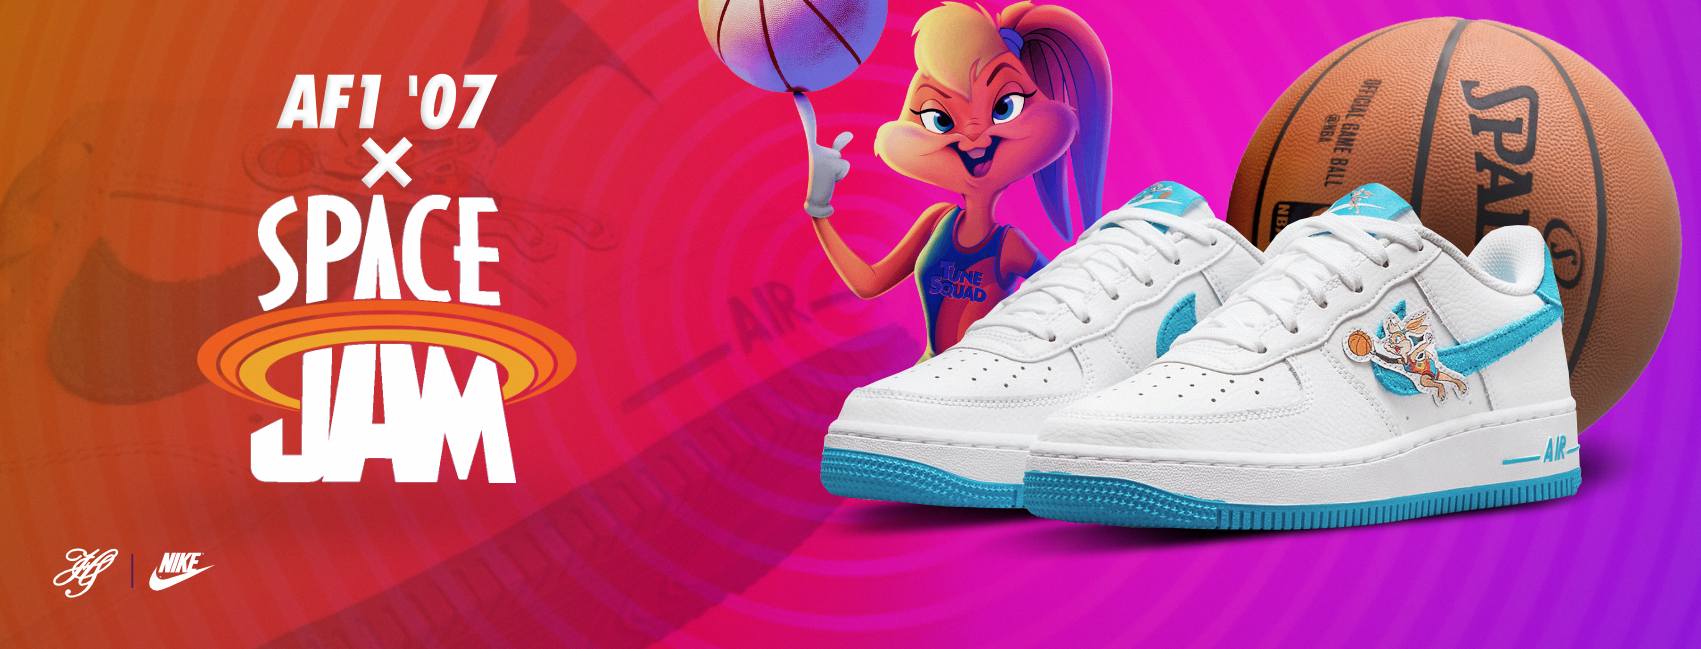 NIKE AIR FORCE 1 LOW X SPACE JAM